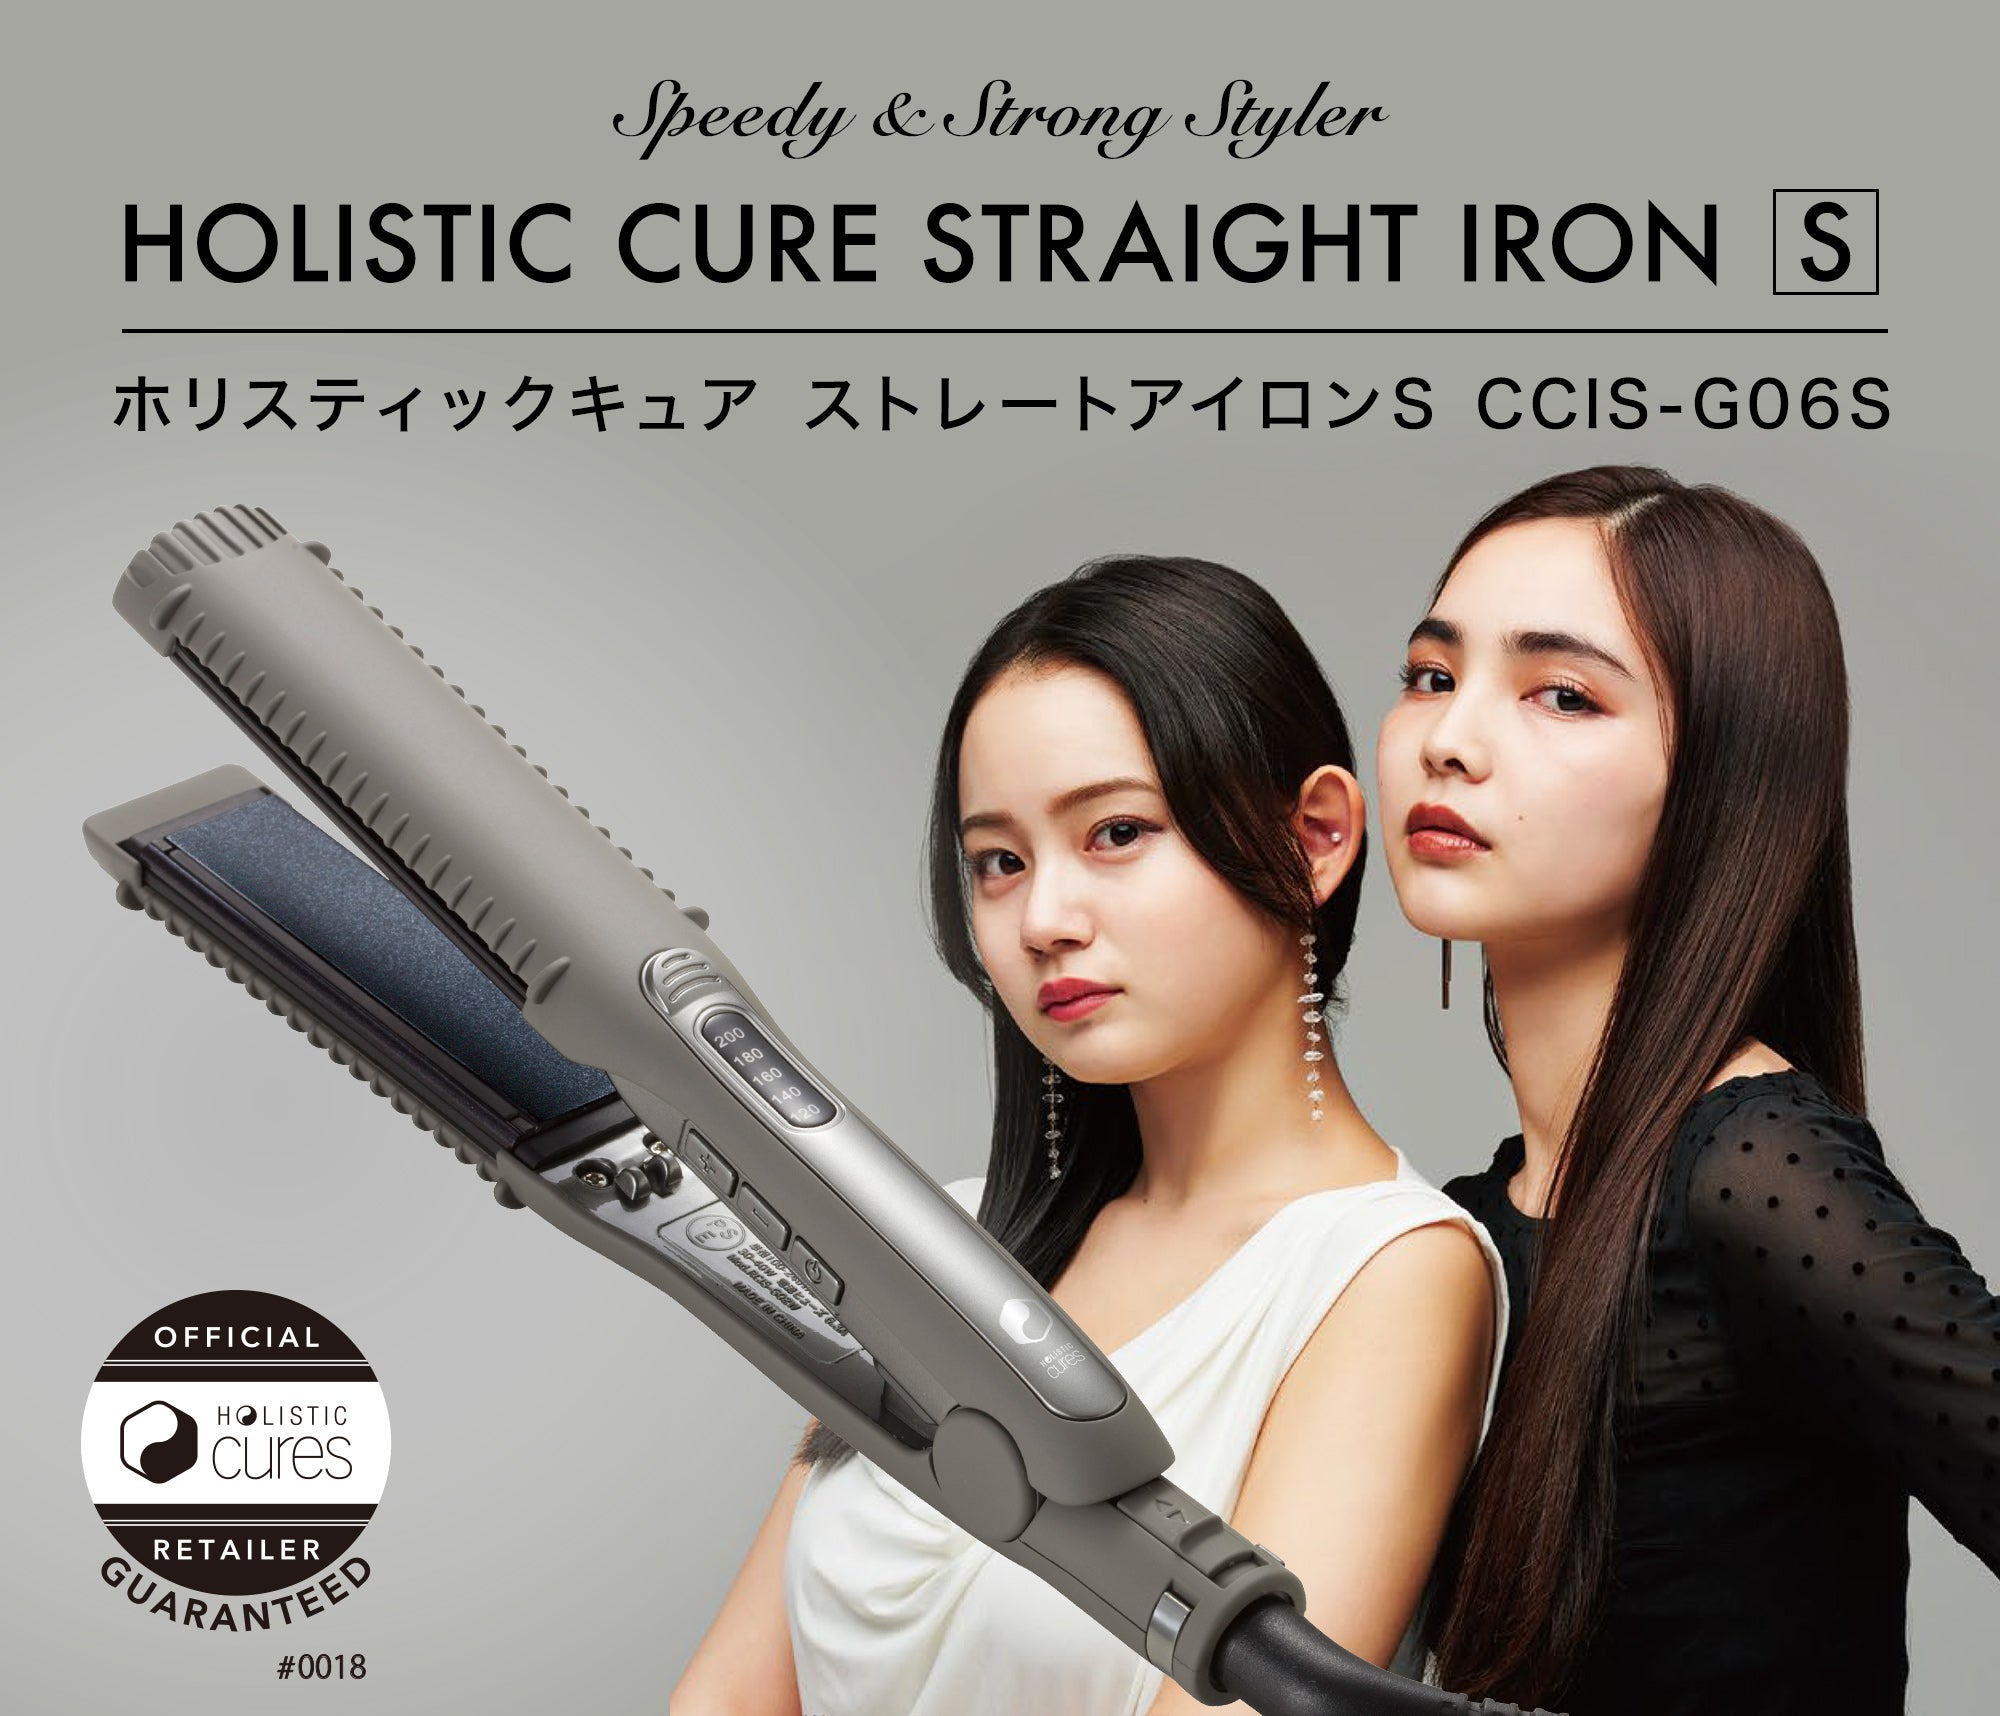 Speedy&Strong Styler HOLISTIC CURE STRAIGHT IRON S